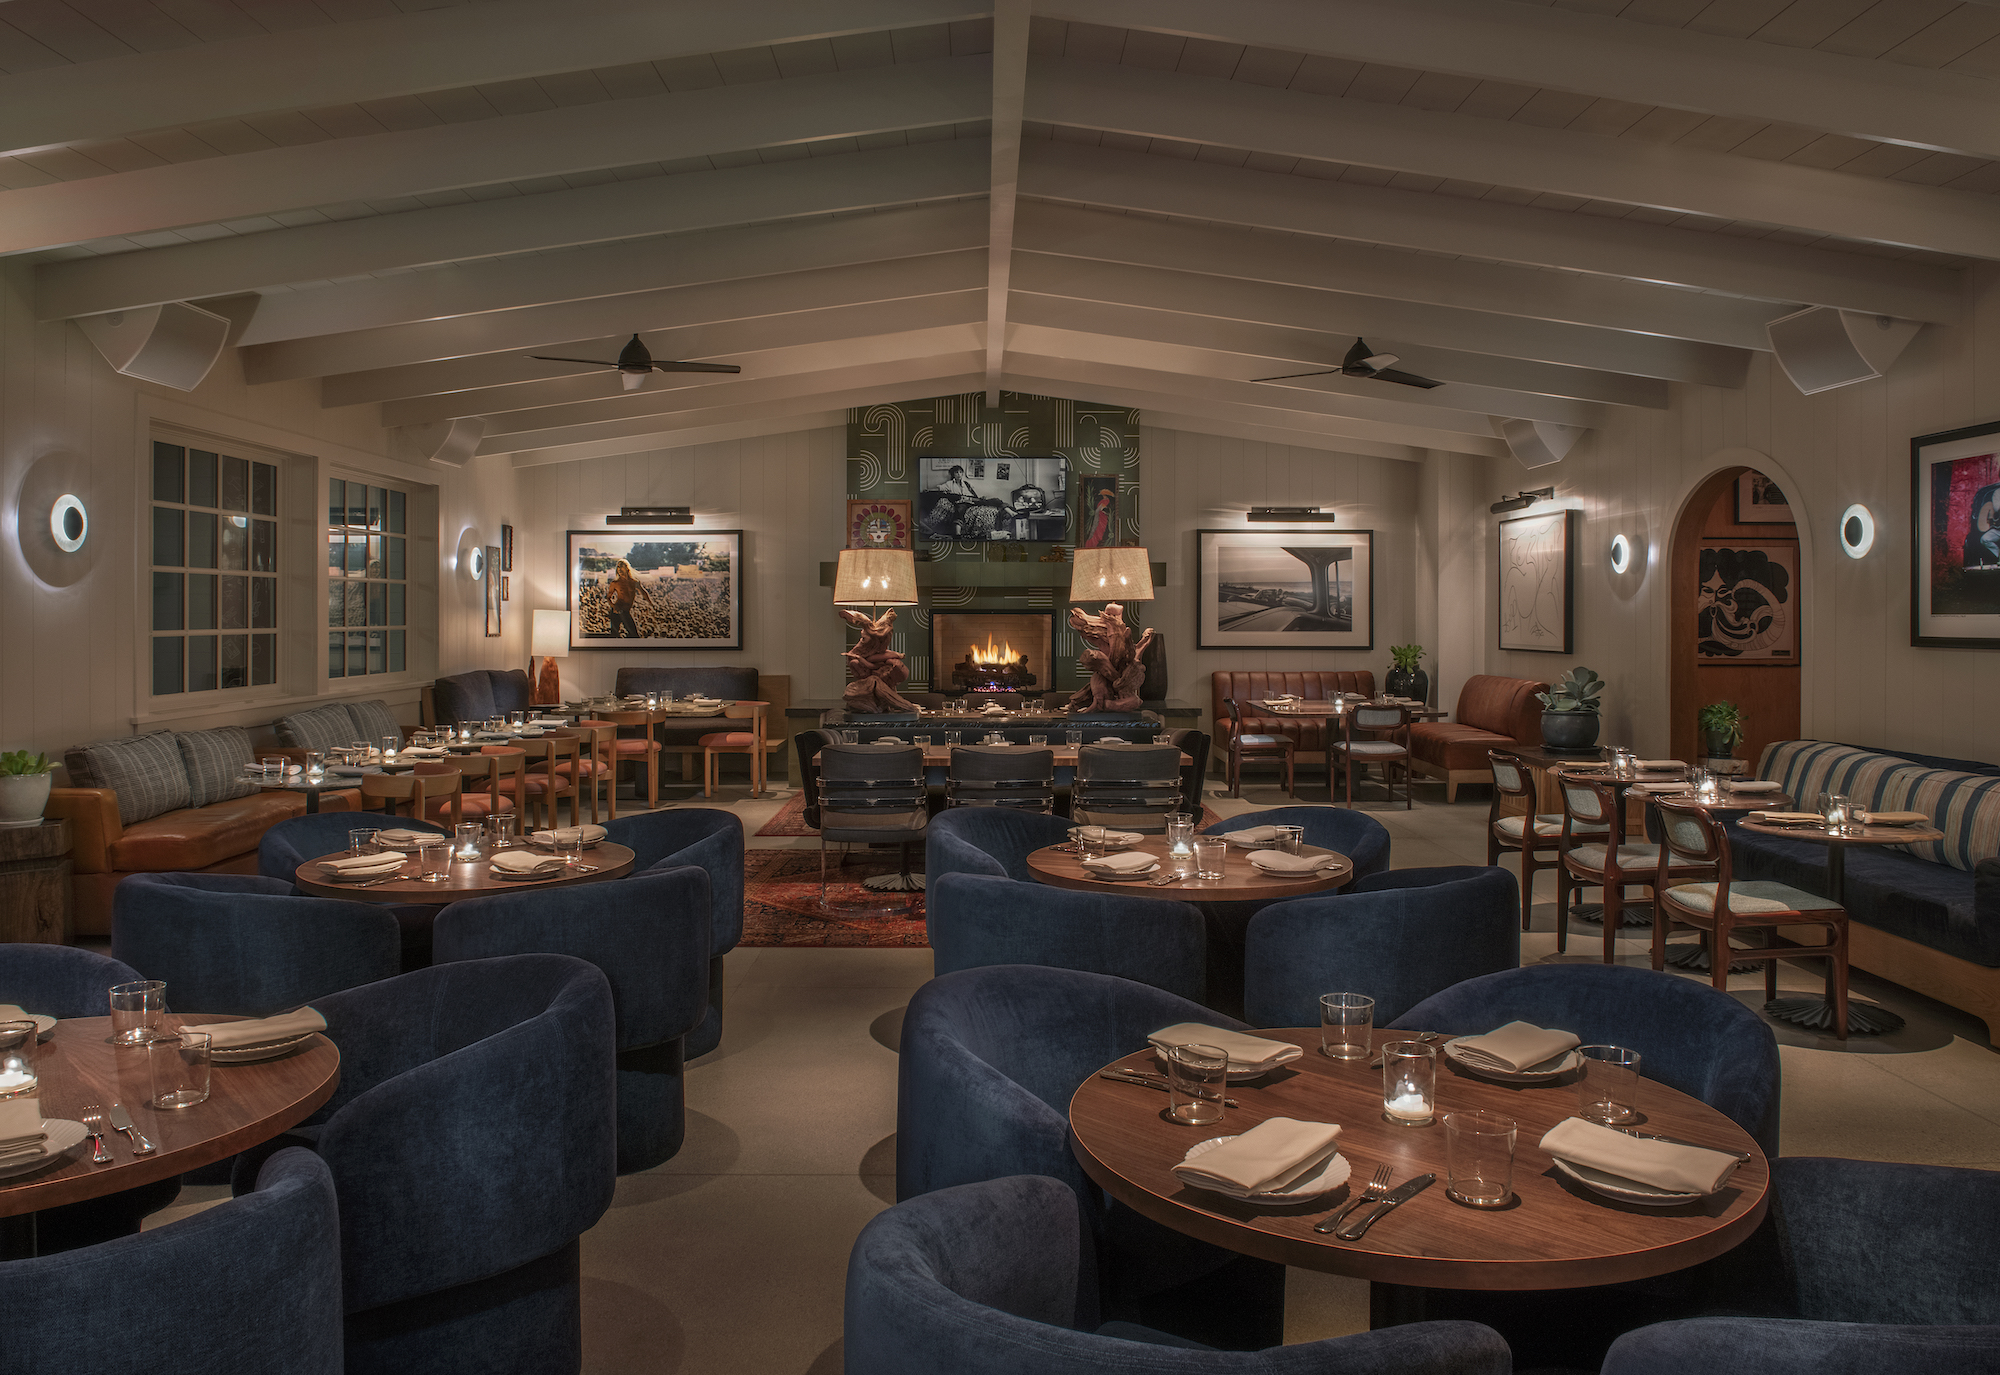 A dimly lit dining room with plush blue chairs around tight tables.